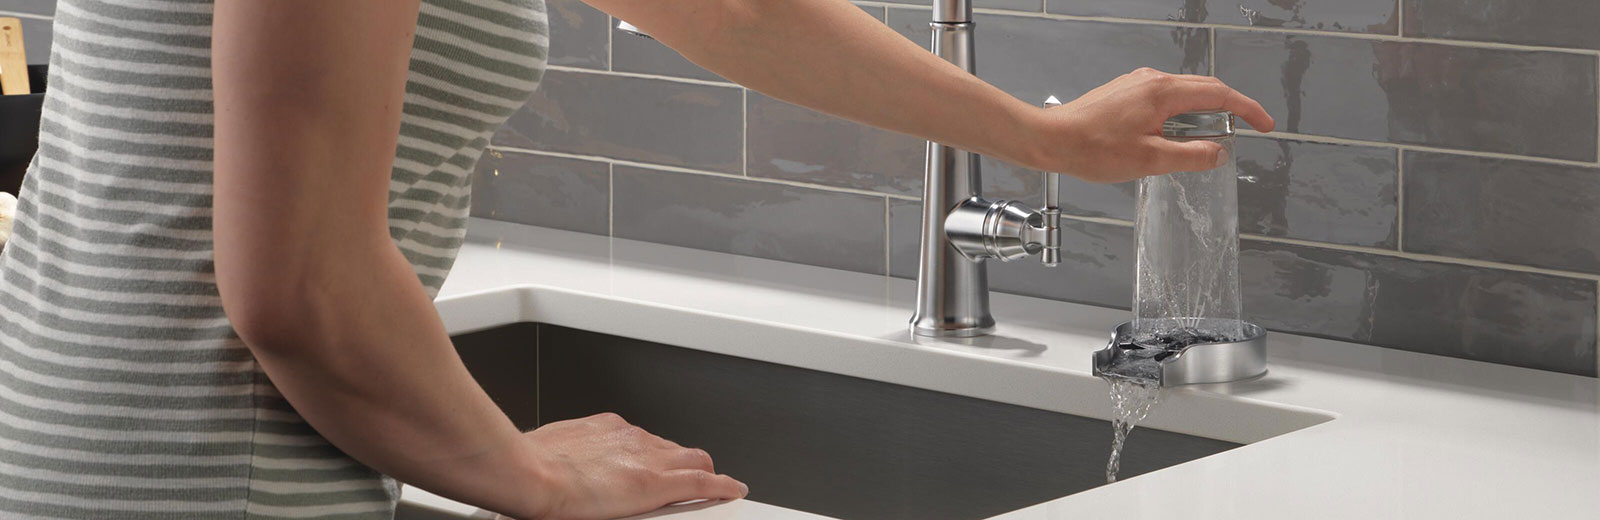 Woman using glass rinser on white countertop with grey brick wall